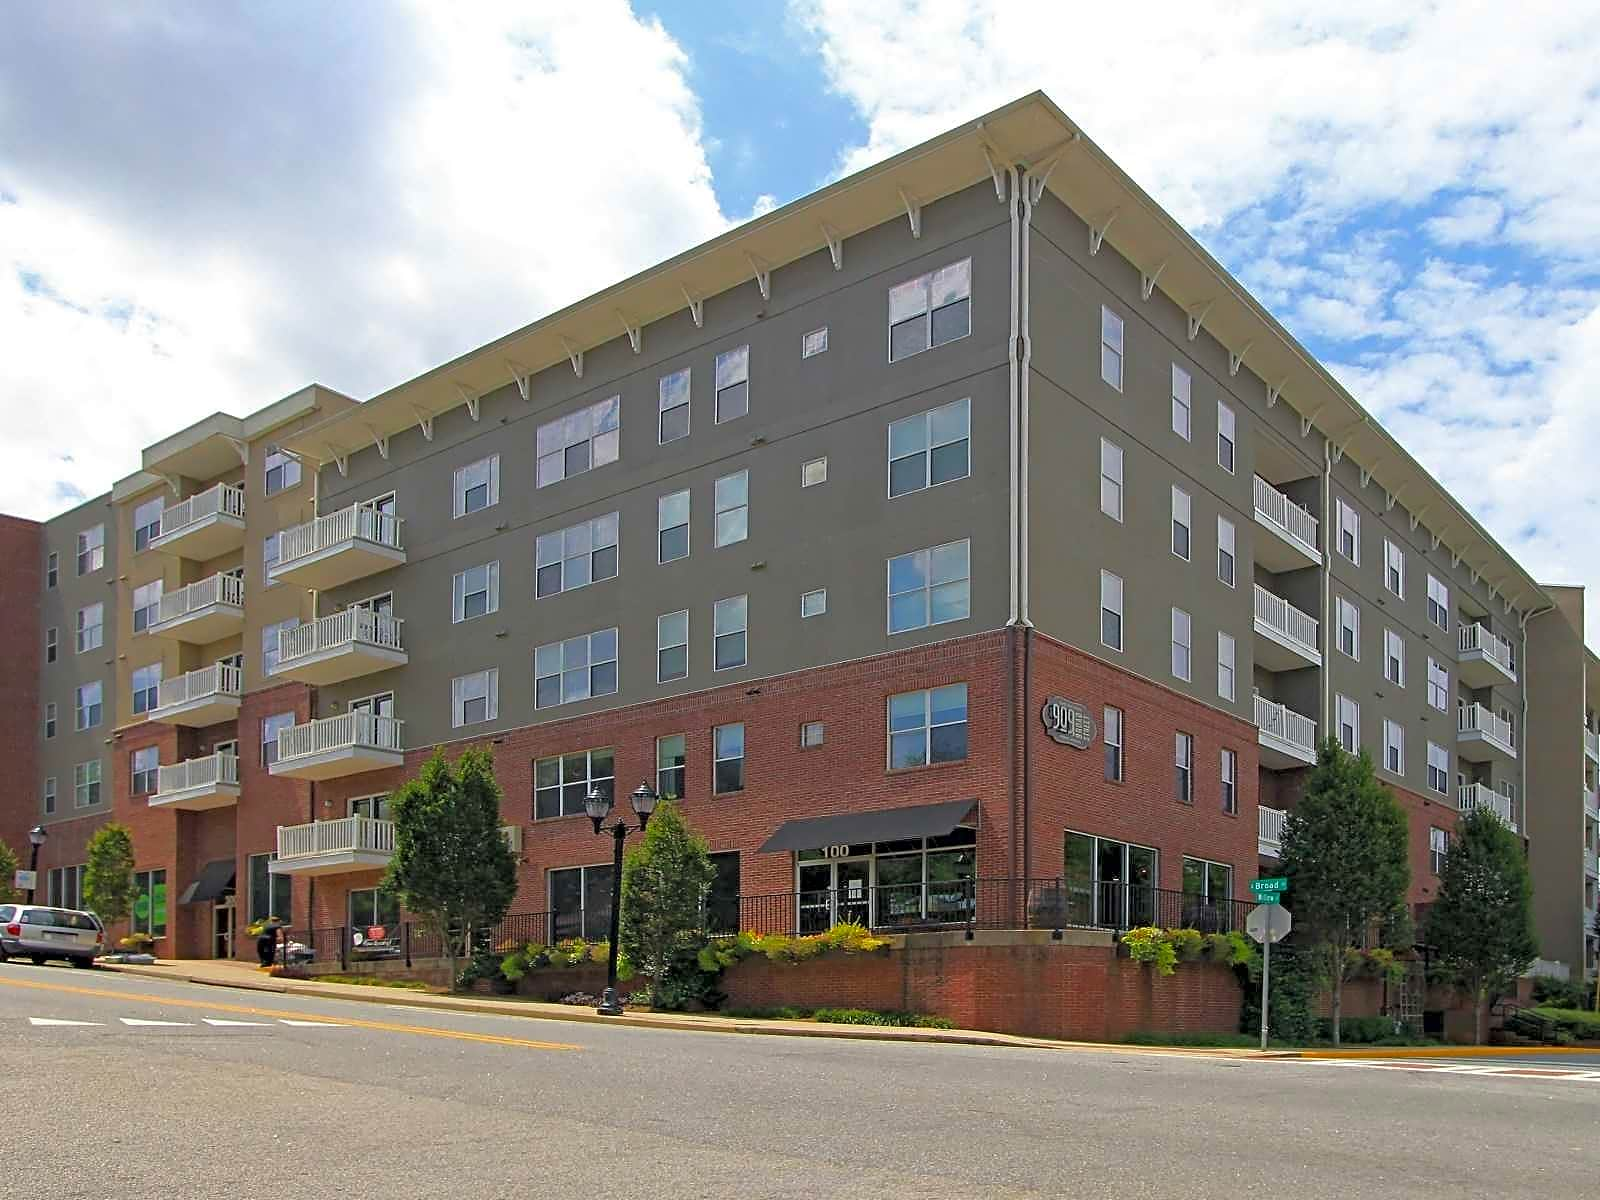 909 Broad Street Apartments - Athens, GA 30601